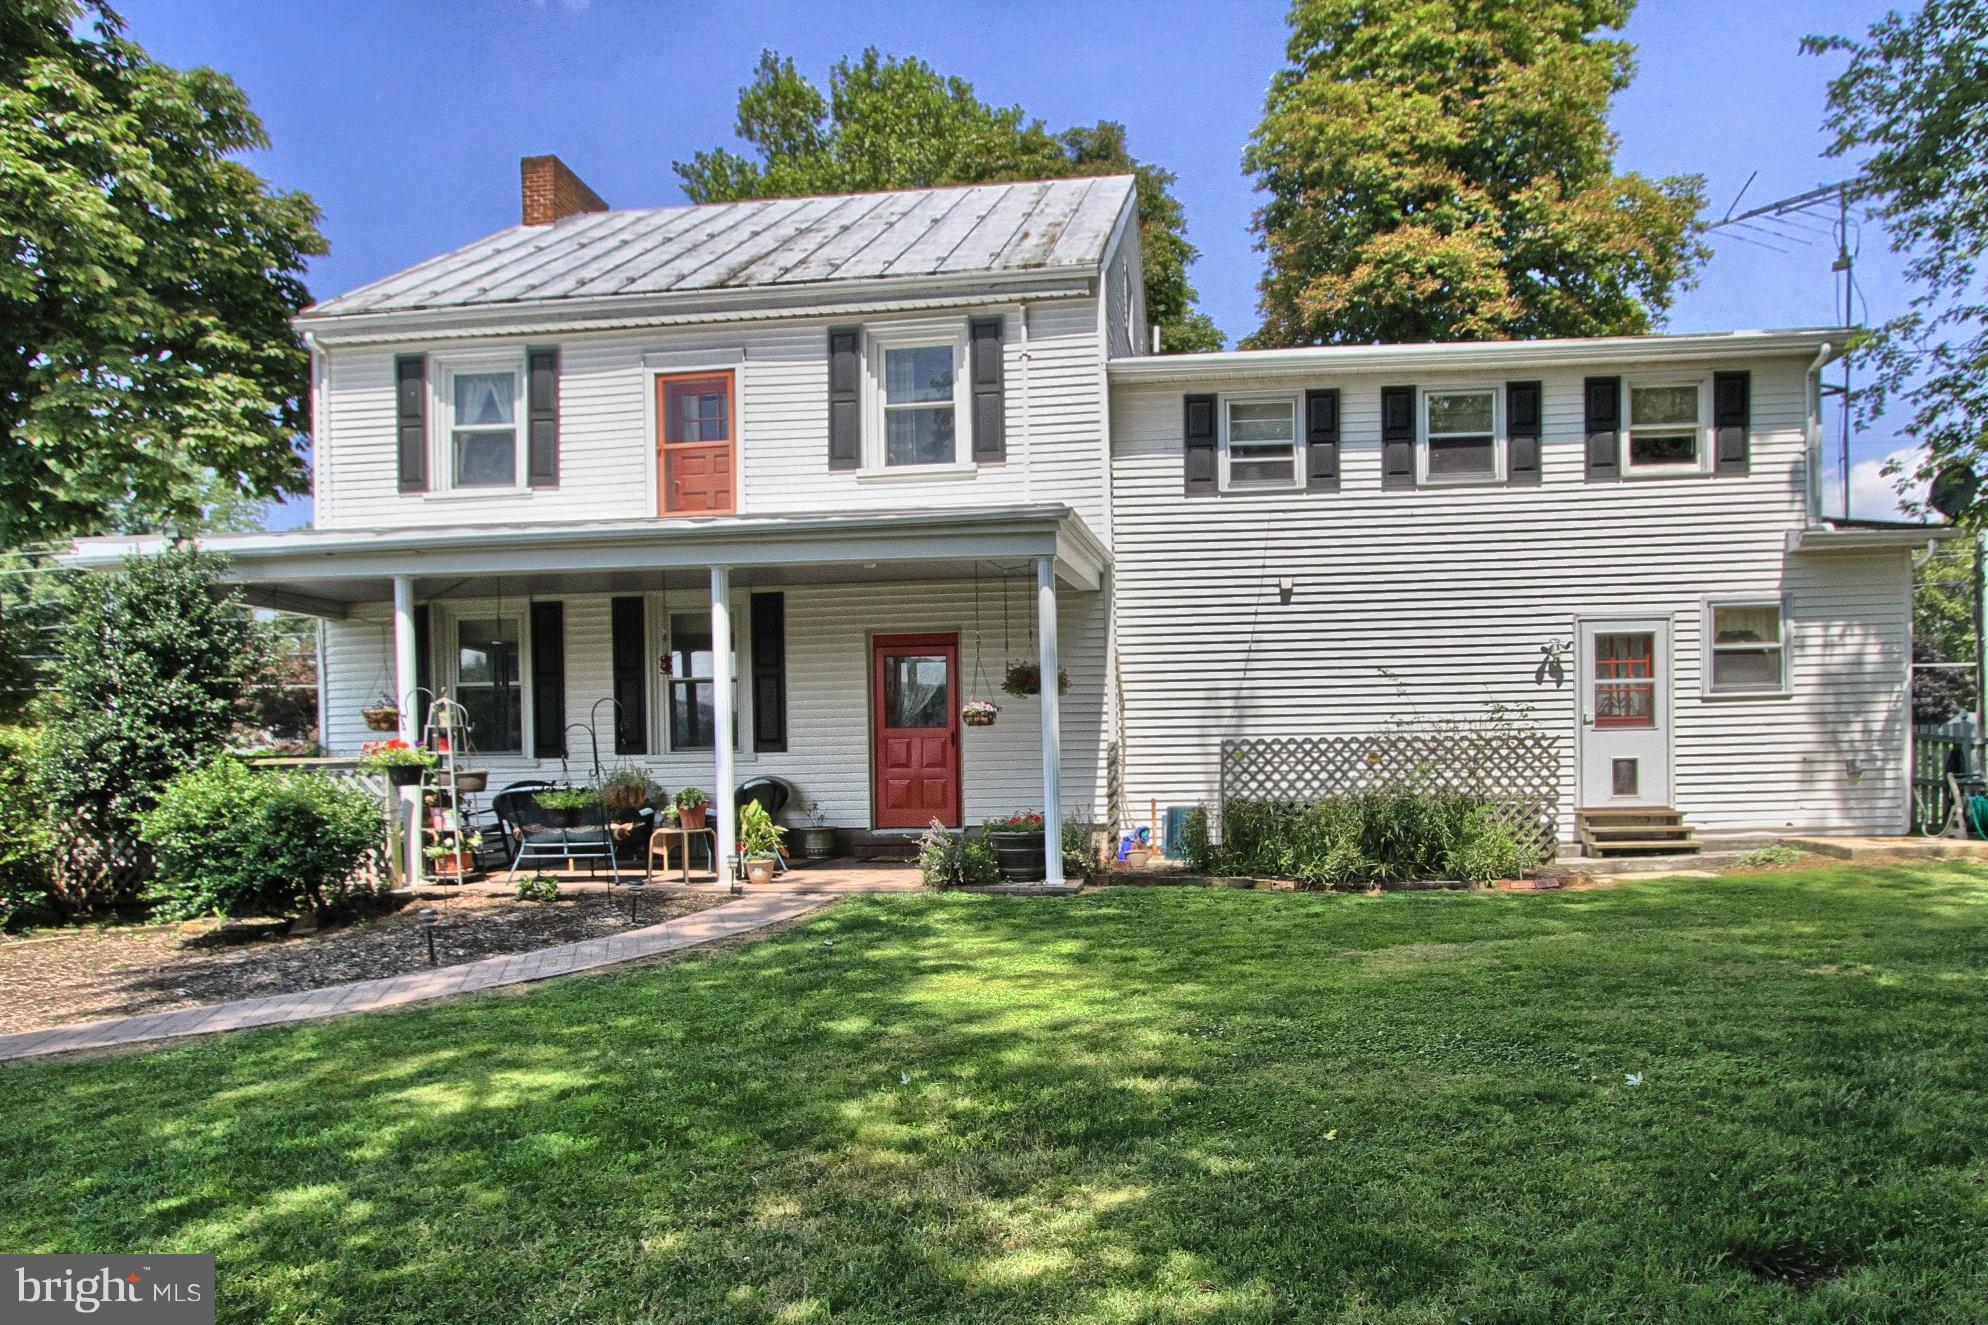 411 PINE ROAD, MOUNT HOLLY SPRINGS, PA 17065